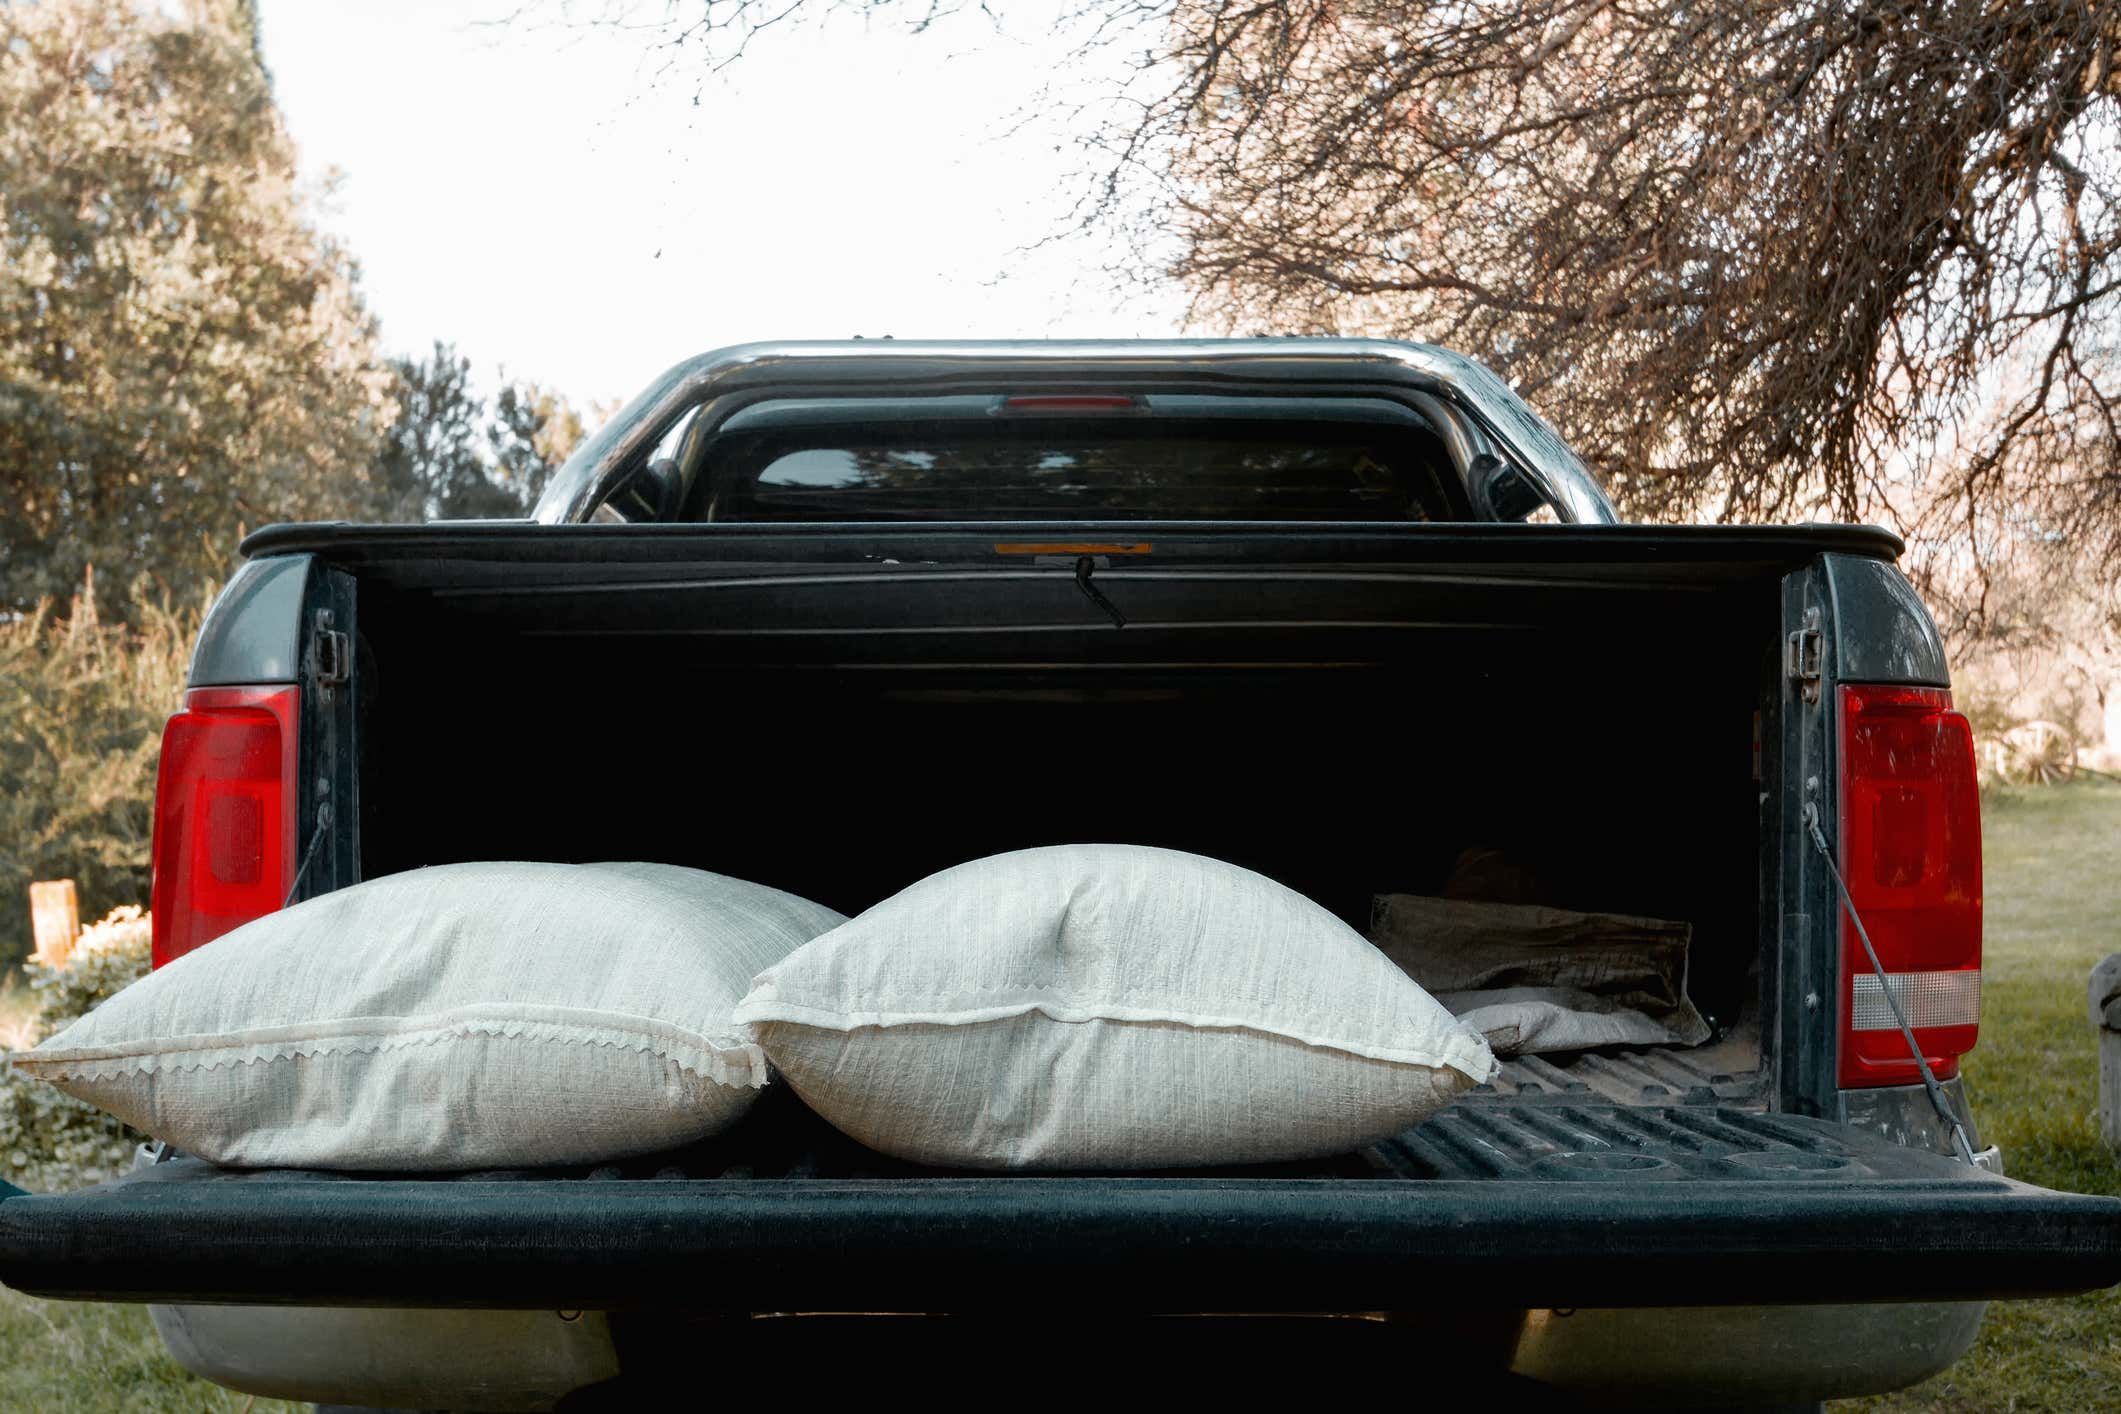 Back of pick up truck with open cab and sandbags